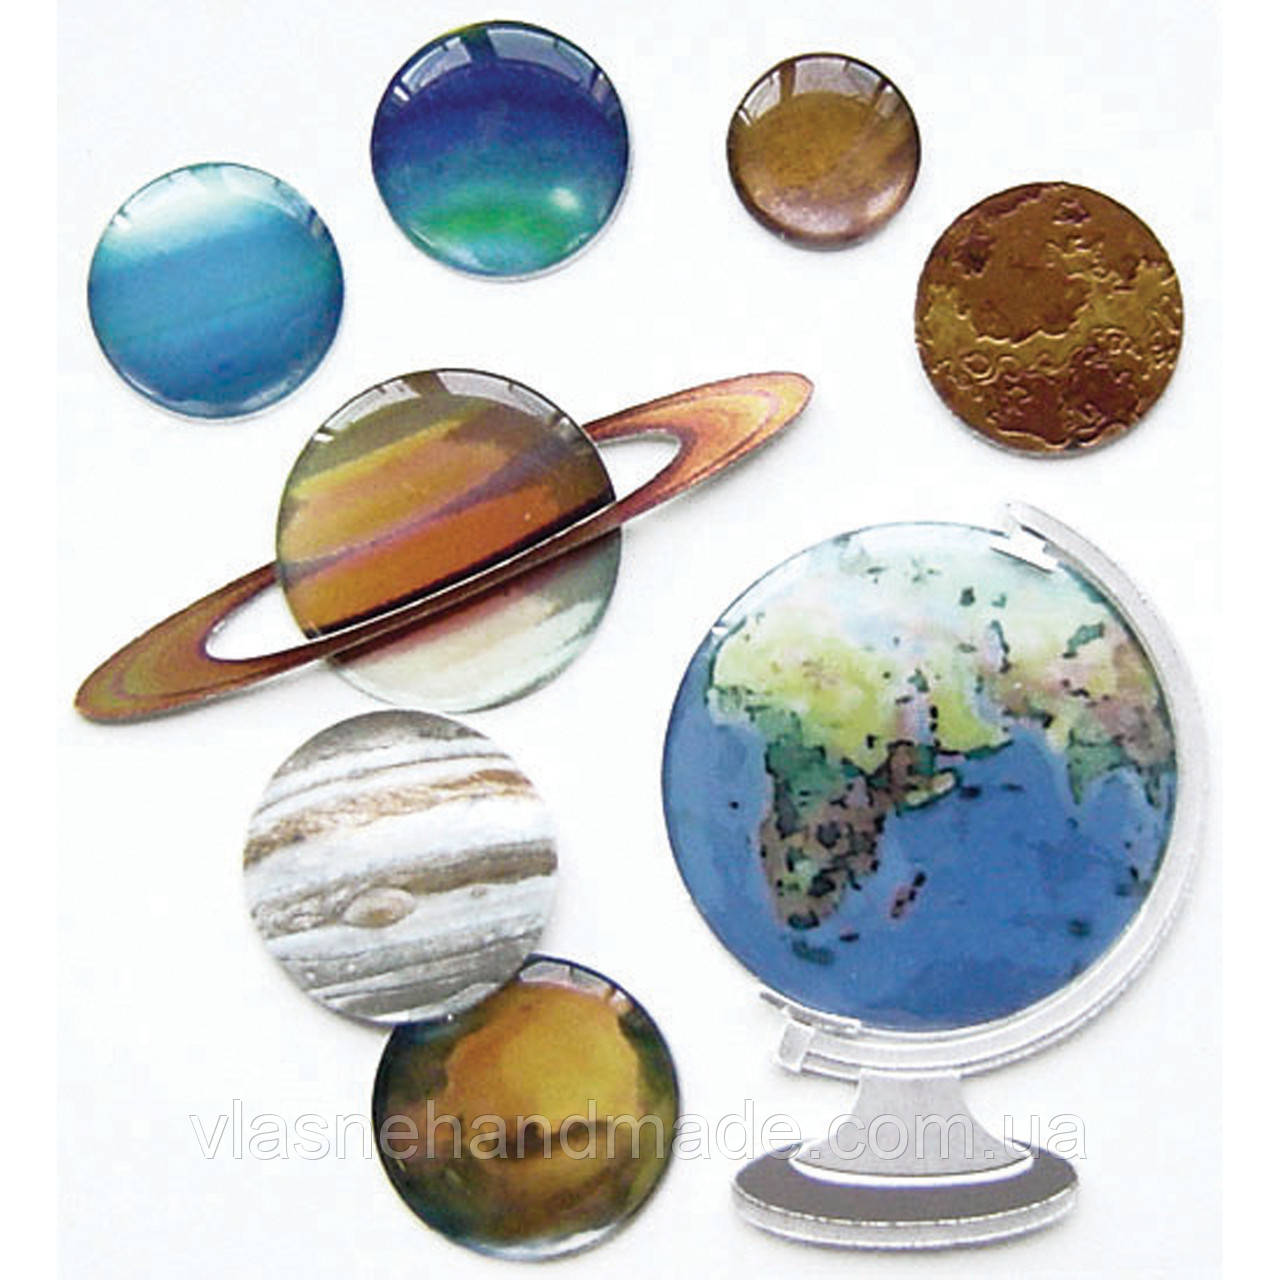 Наклейки 3D - GLOBE AND PLANETS  - Jolee's Boutique - 11 шт.